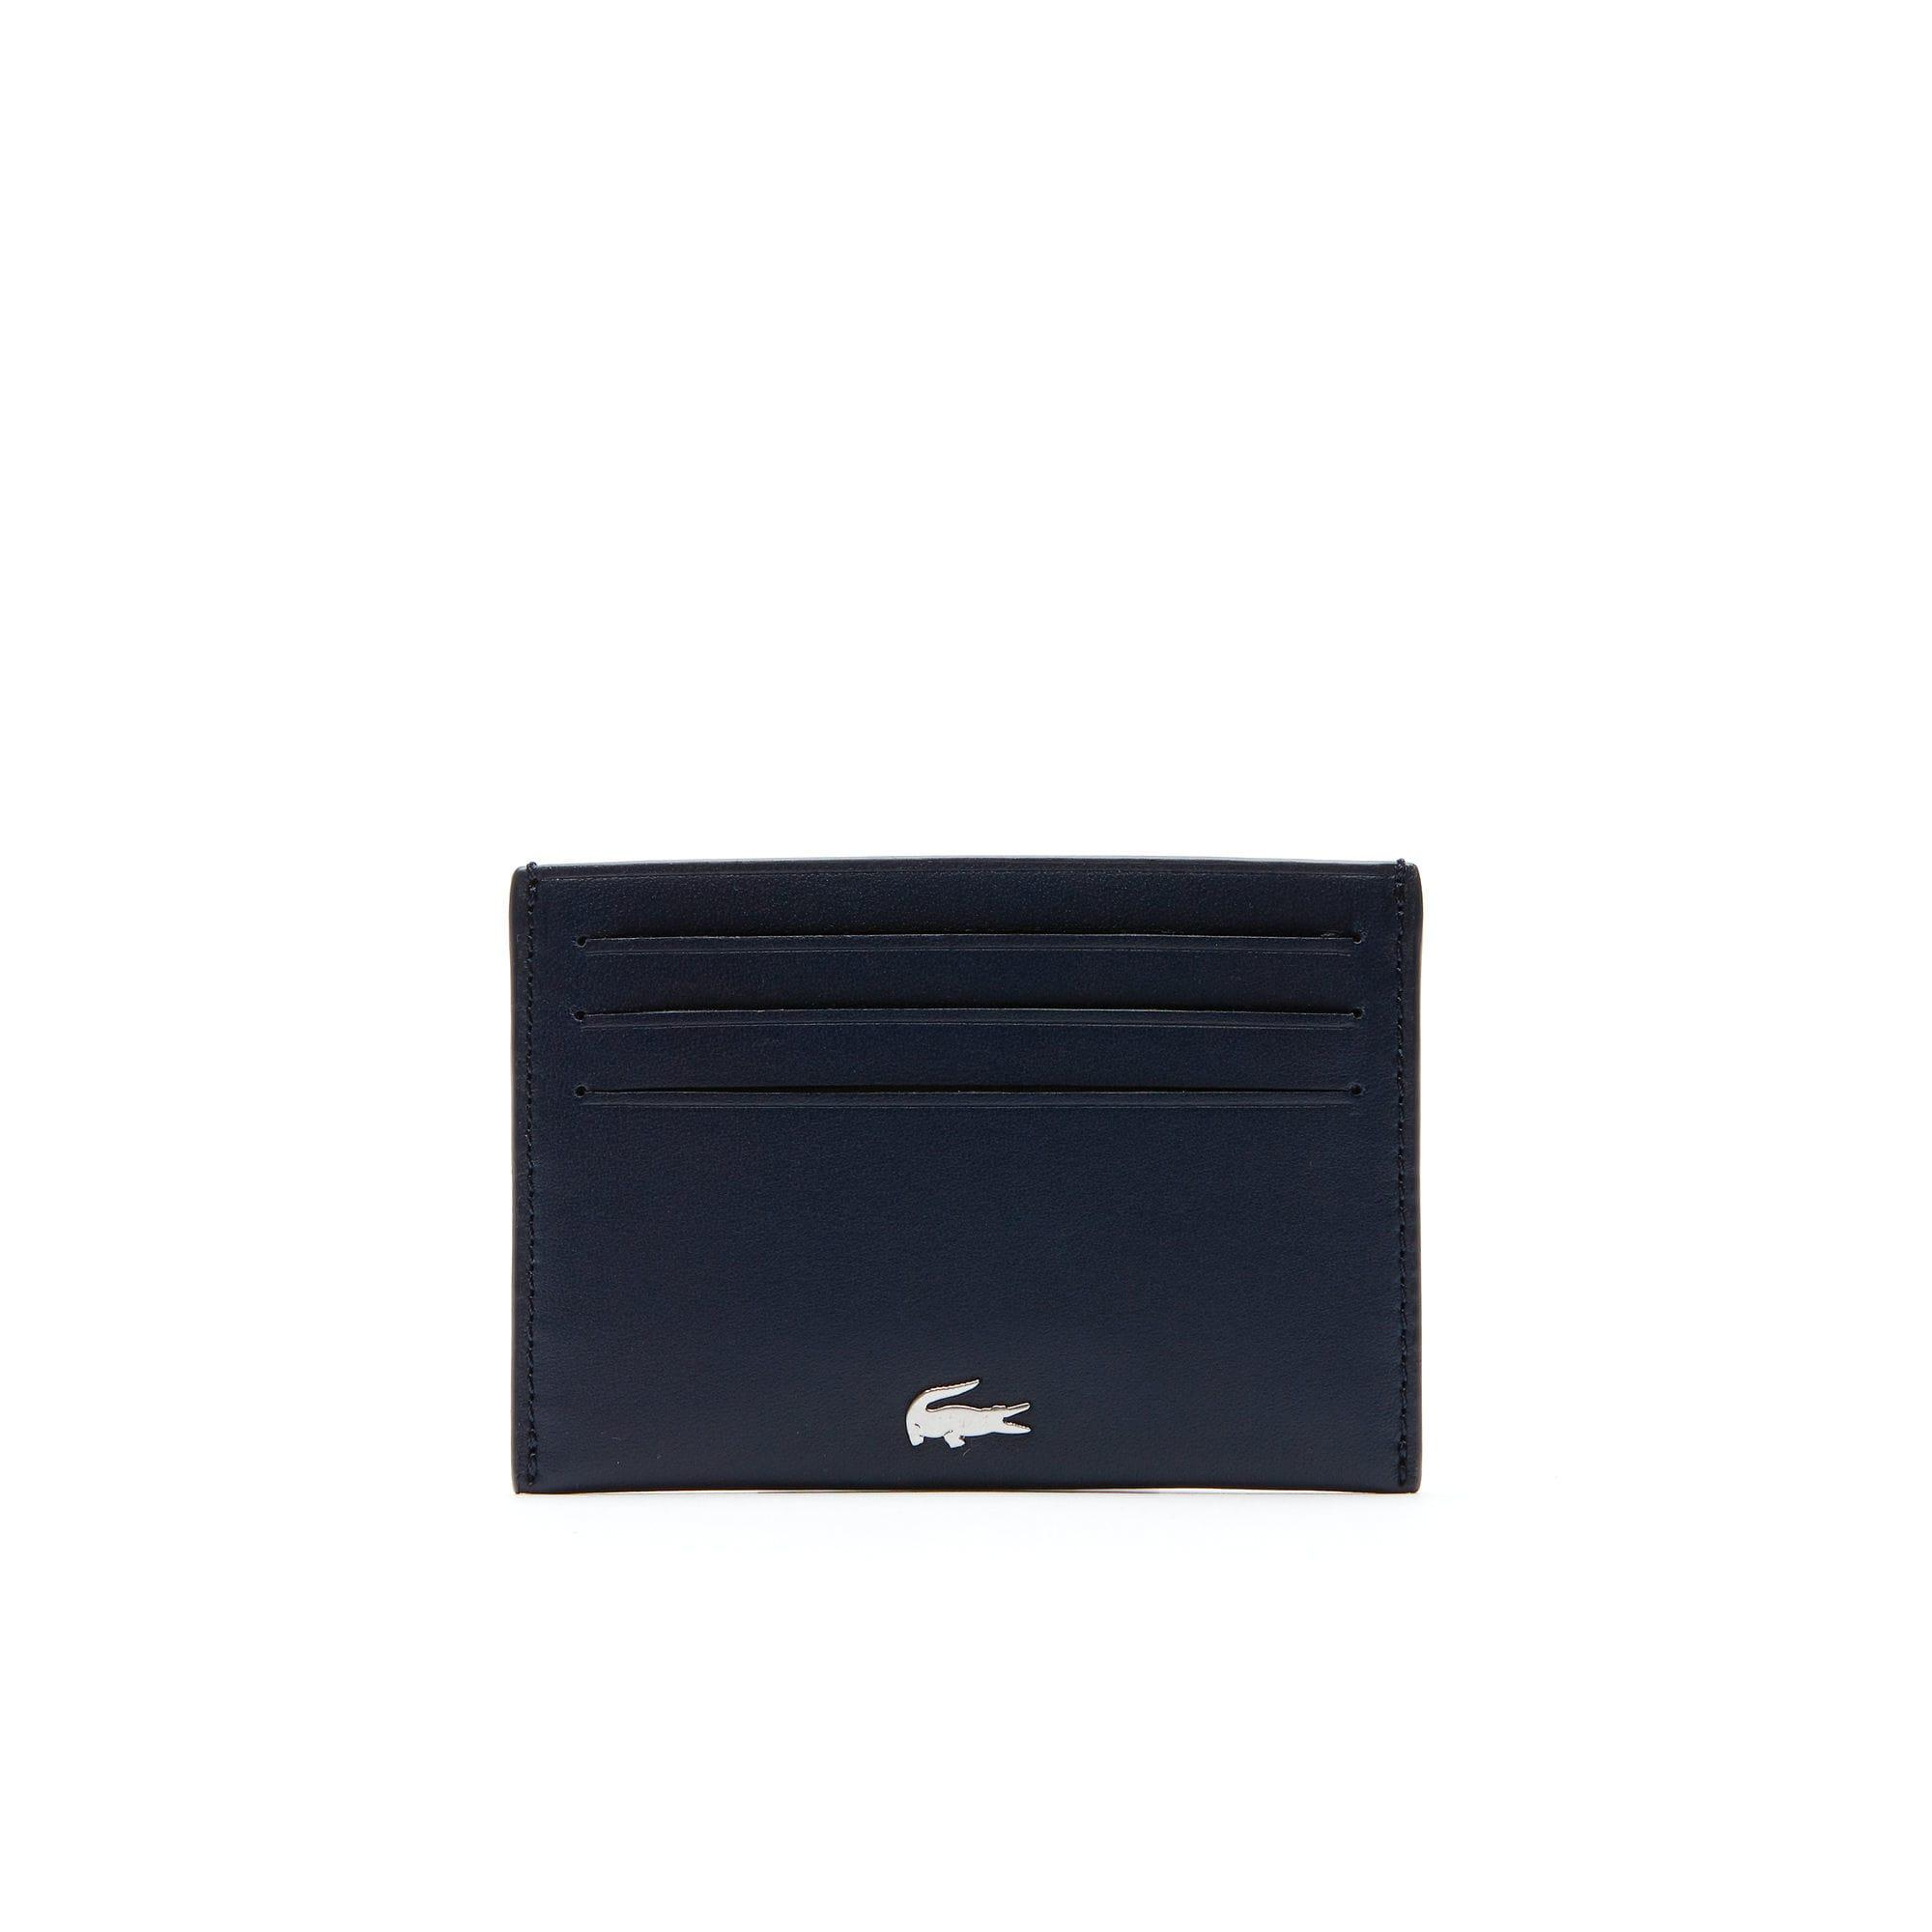 84ee4d53f4 Lacoste Fitzgerald Leather Credit Card Holder in Blue for Men - Lyst